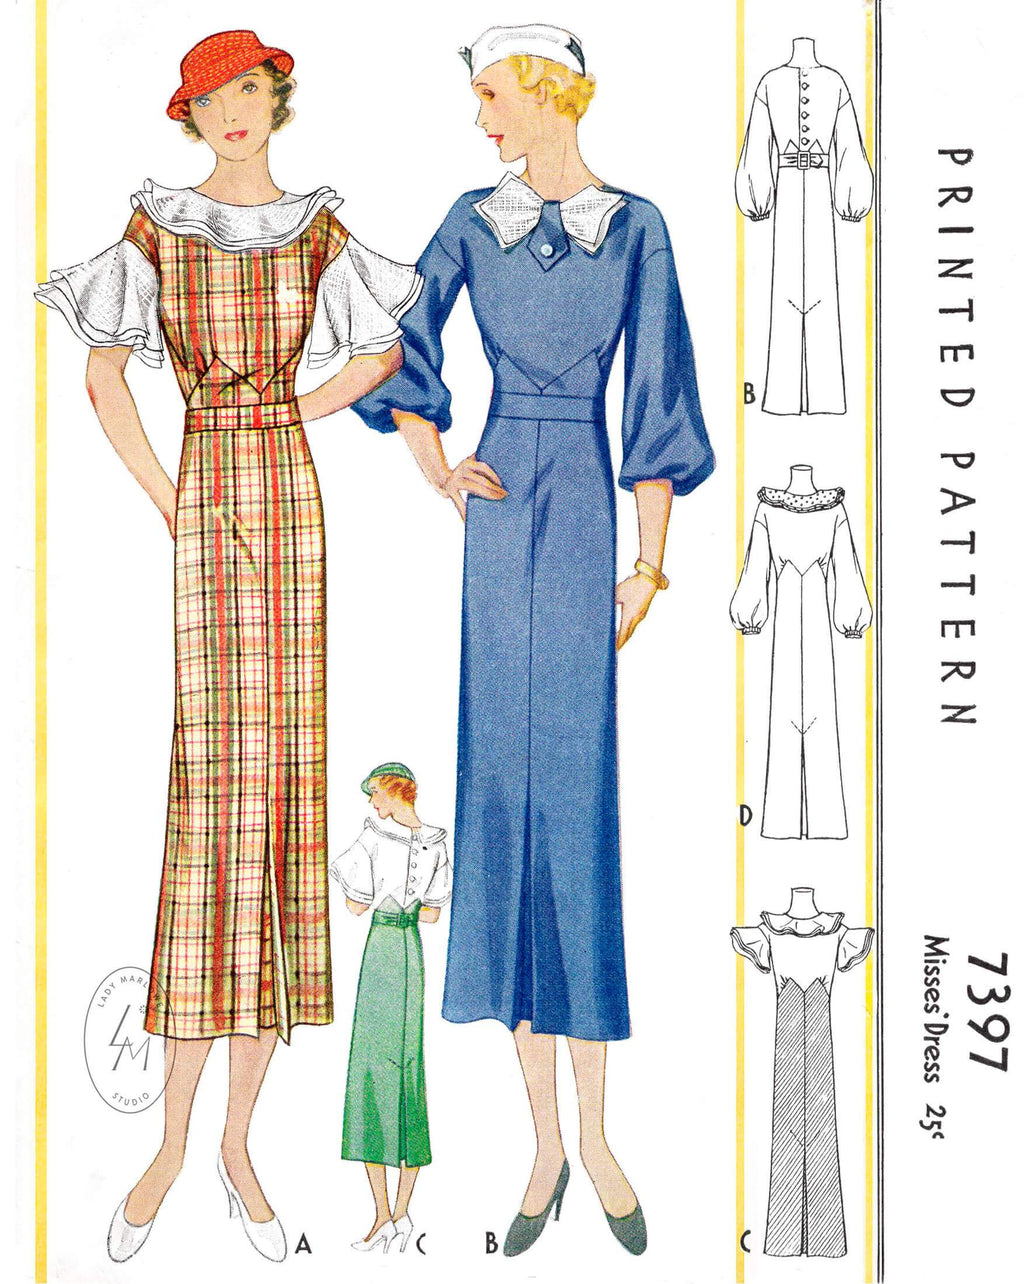 1930s 1933 McCall 7397 art deco dress in 4 styles vintage sewing pattern reproduction